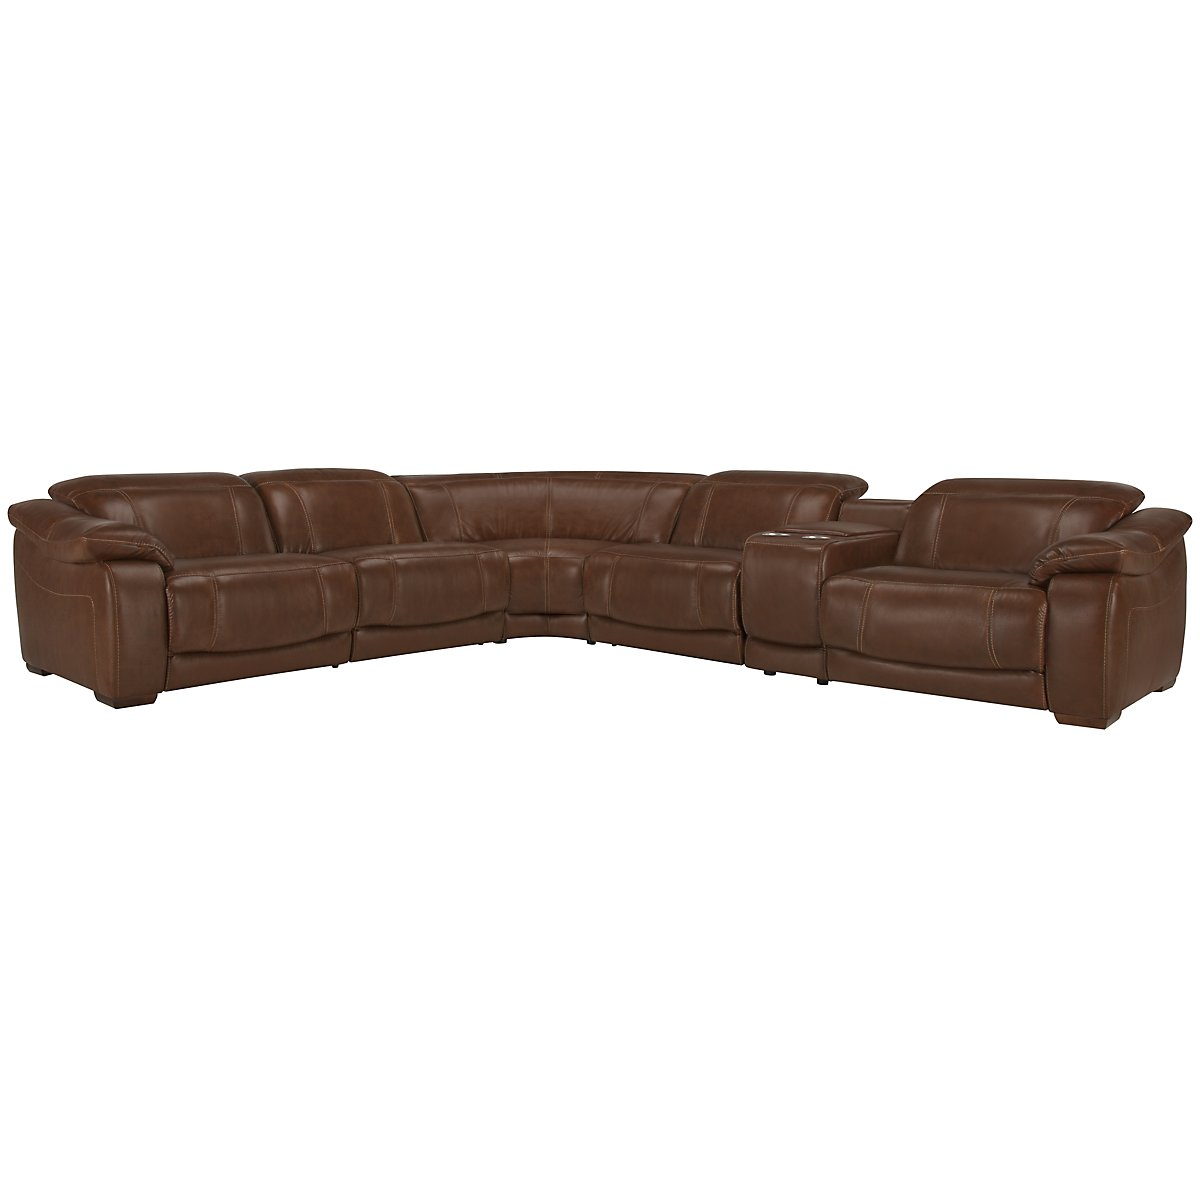 Orion Medium Brown Leather & Bonded Leather Large Two-Arm Power Reclining Sectional